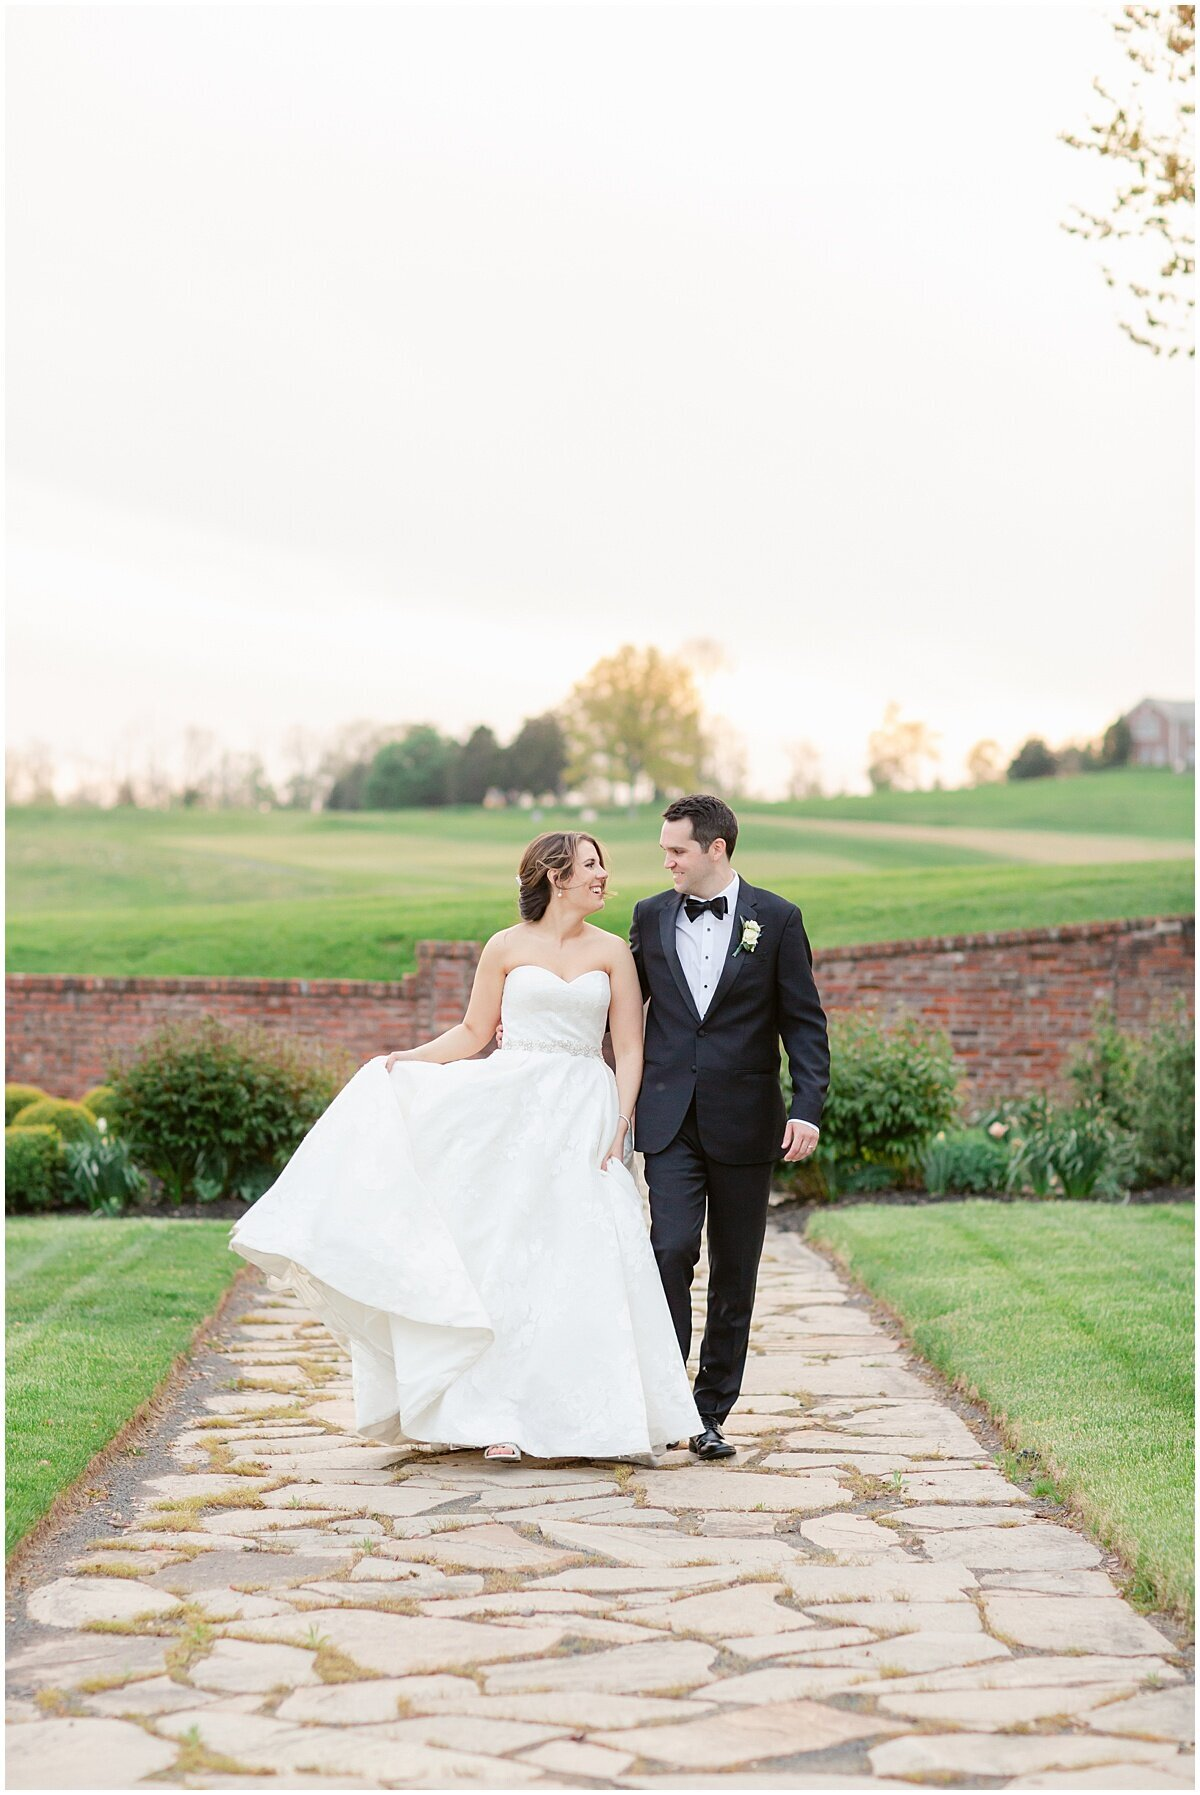 Hamilton-Farm-Wedding-Photographer-Lauren-Kearns_0079